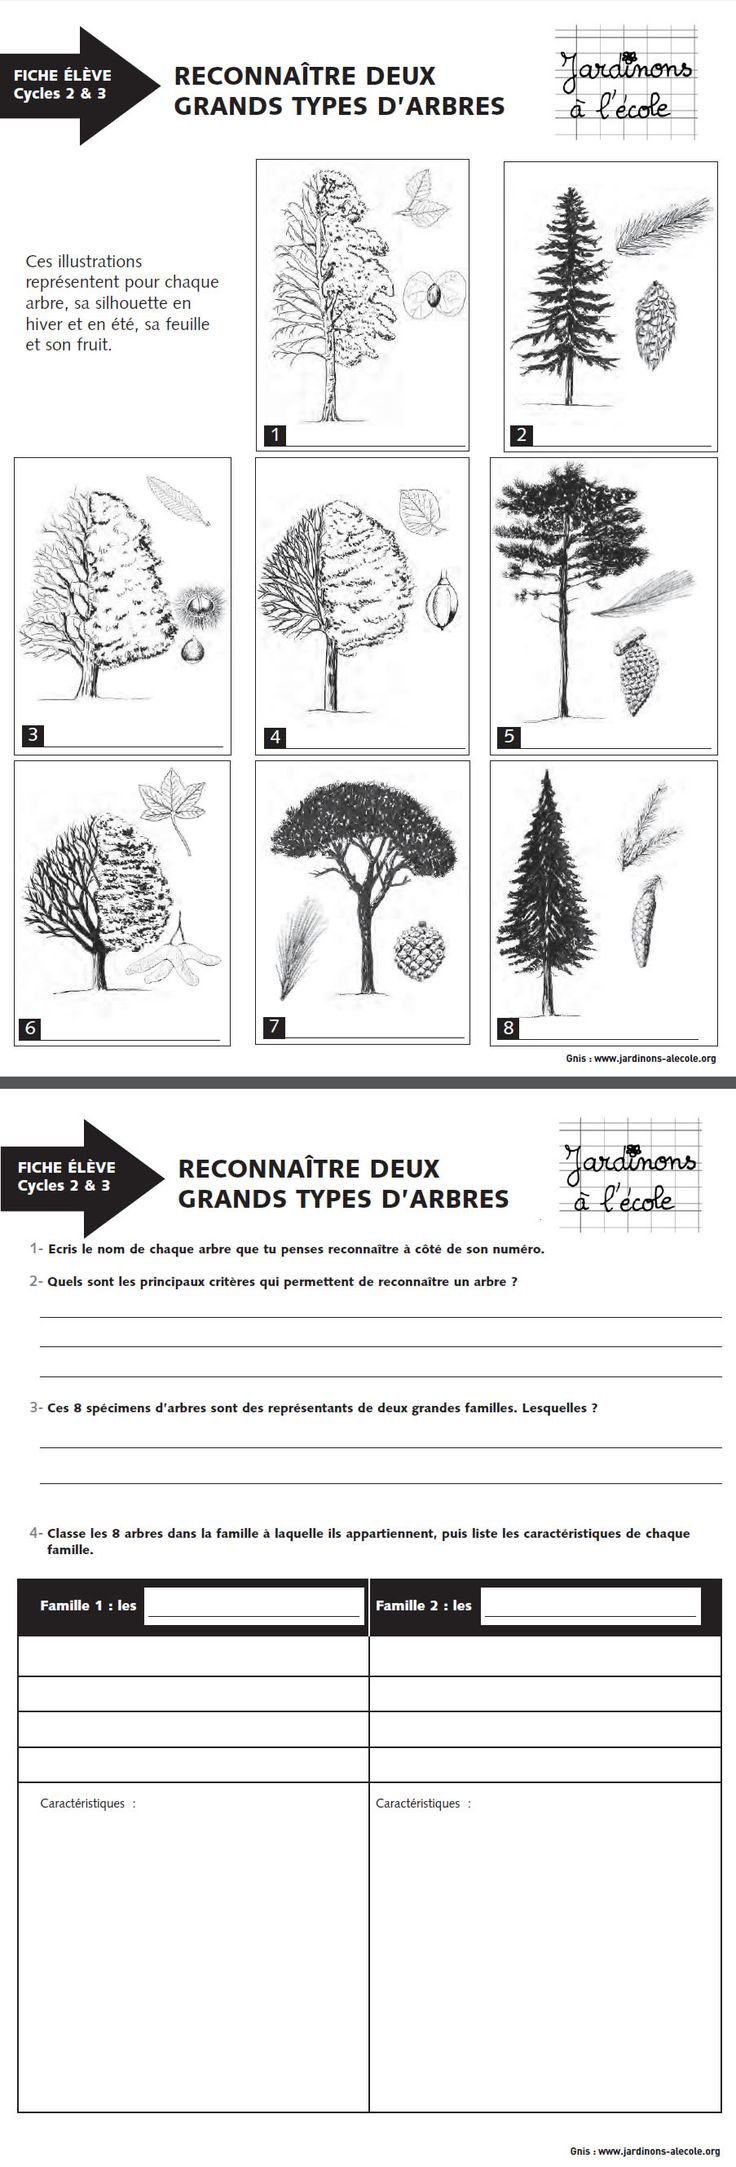 best 25 reconnaitre les arbres ideas on pinterest les arbres la science des plantes and. Black Bedroom Furniture Sets. Home Design Ideas